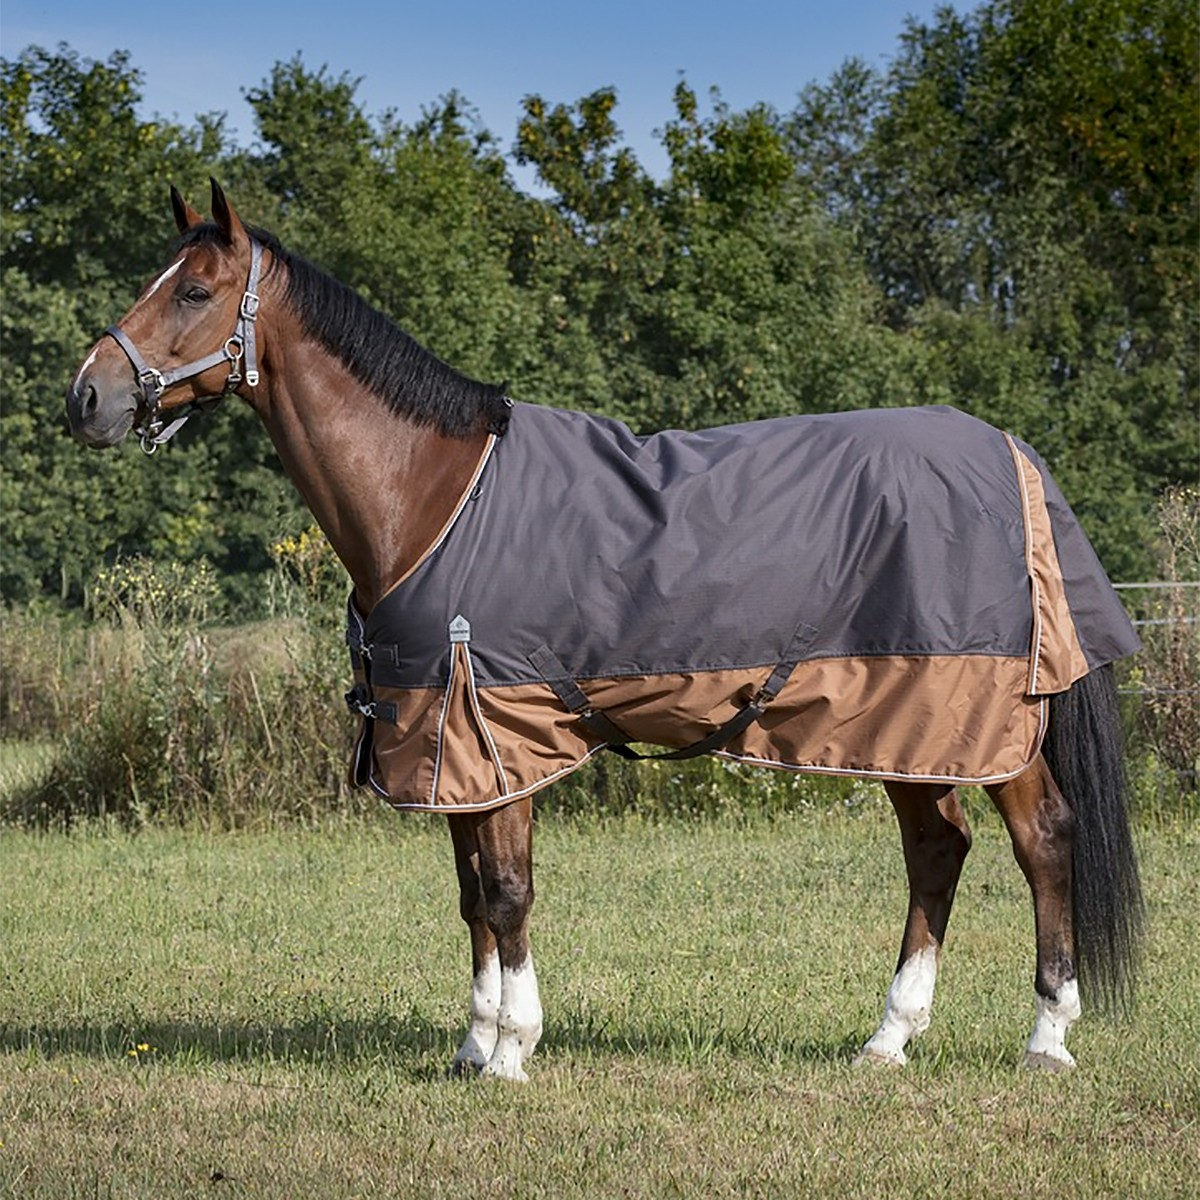 Equitheme Tyrex 600D 300g Aisance Grey/Brown Heavyweight Turnout Rug